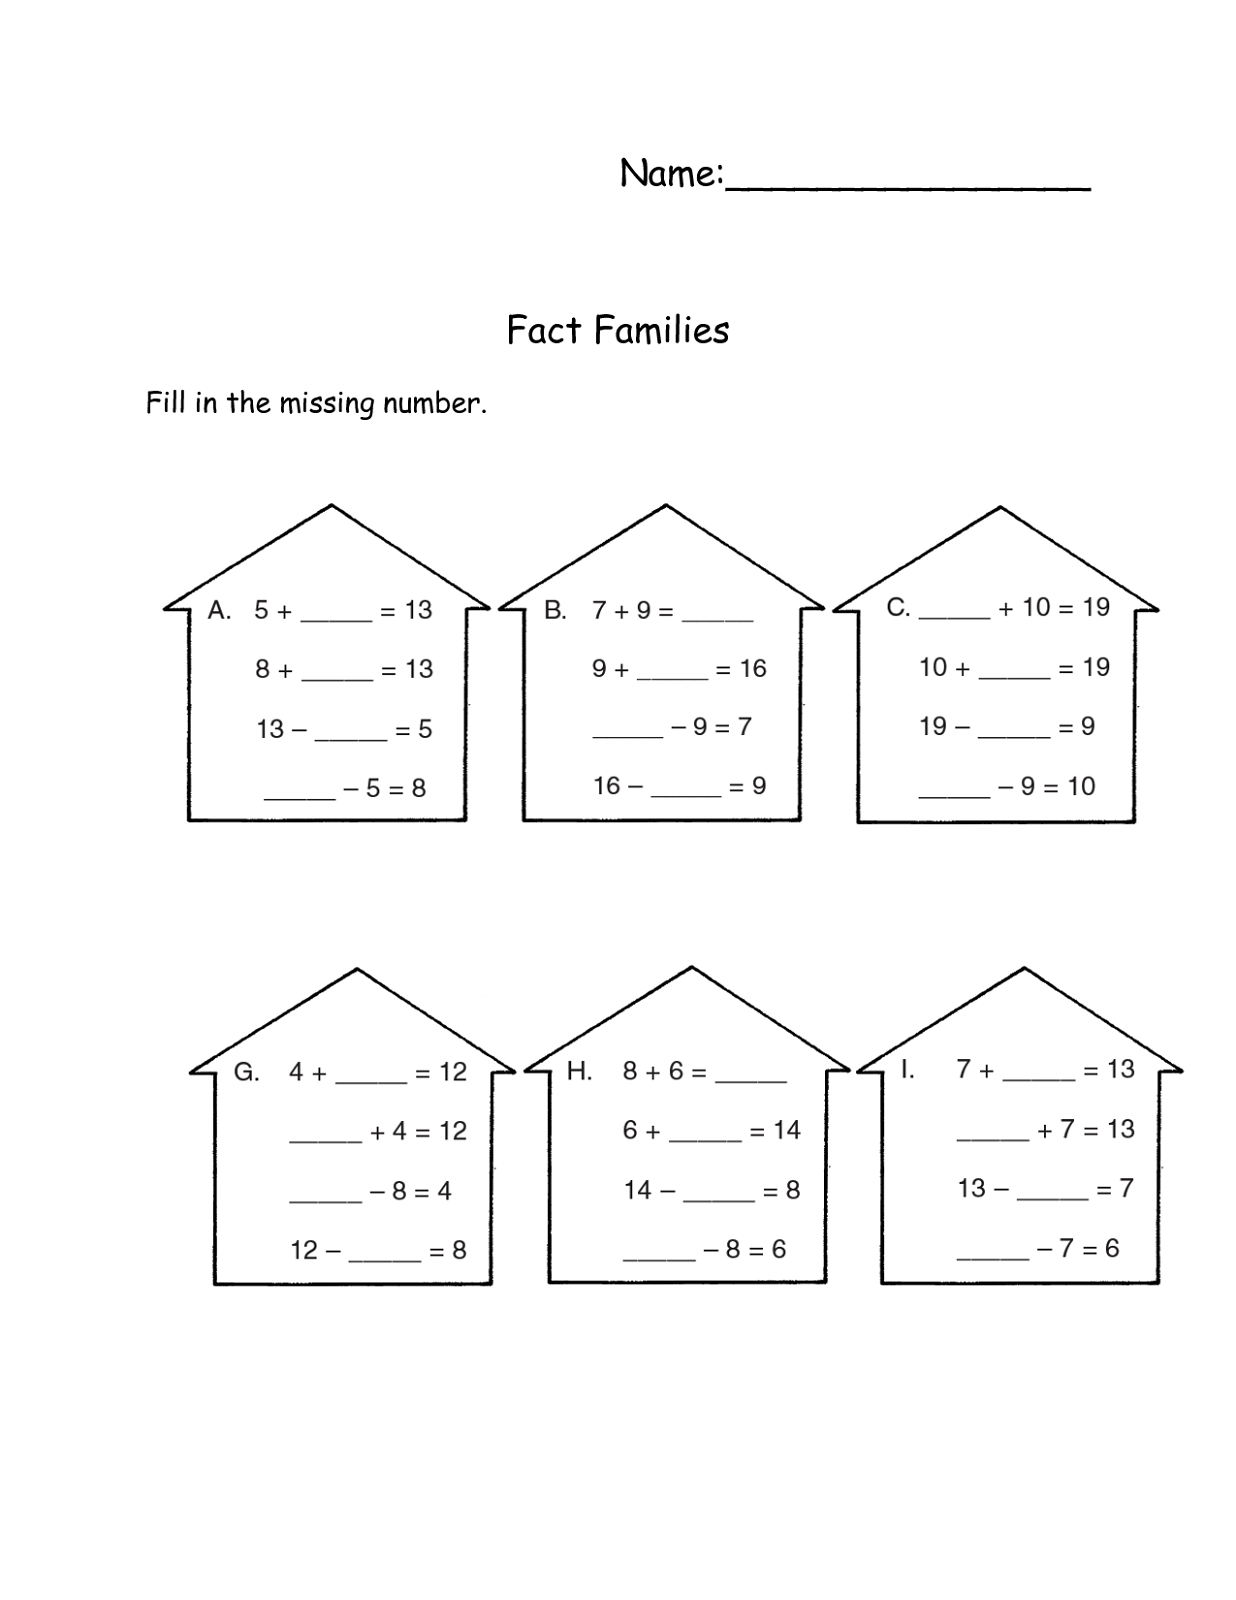 Worksheet 612792 Fact Families Multiplication and Division – Fact Family Multiplication Worksheets